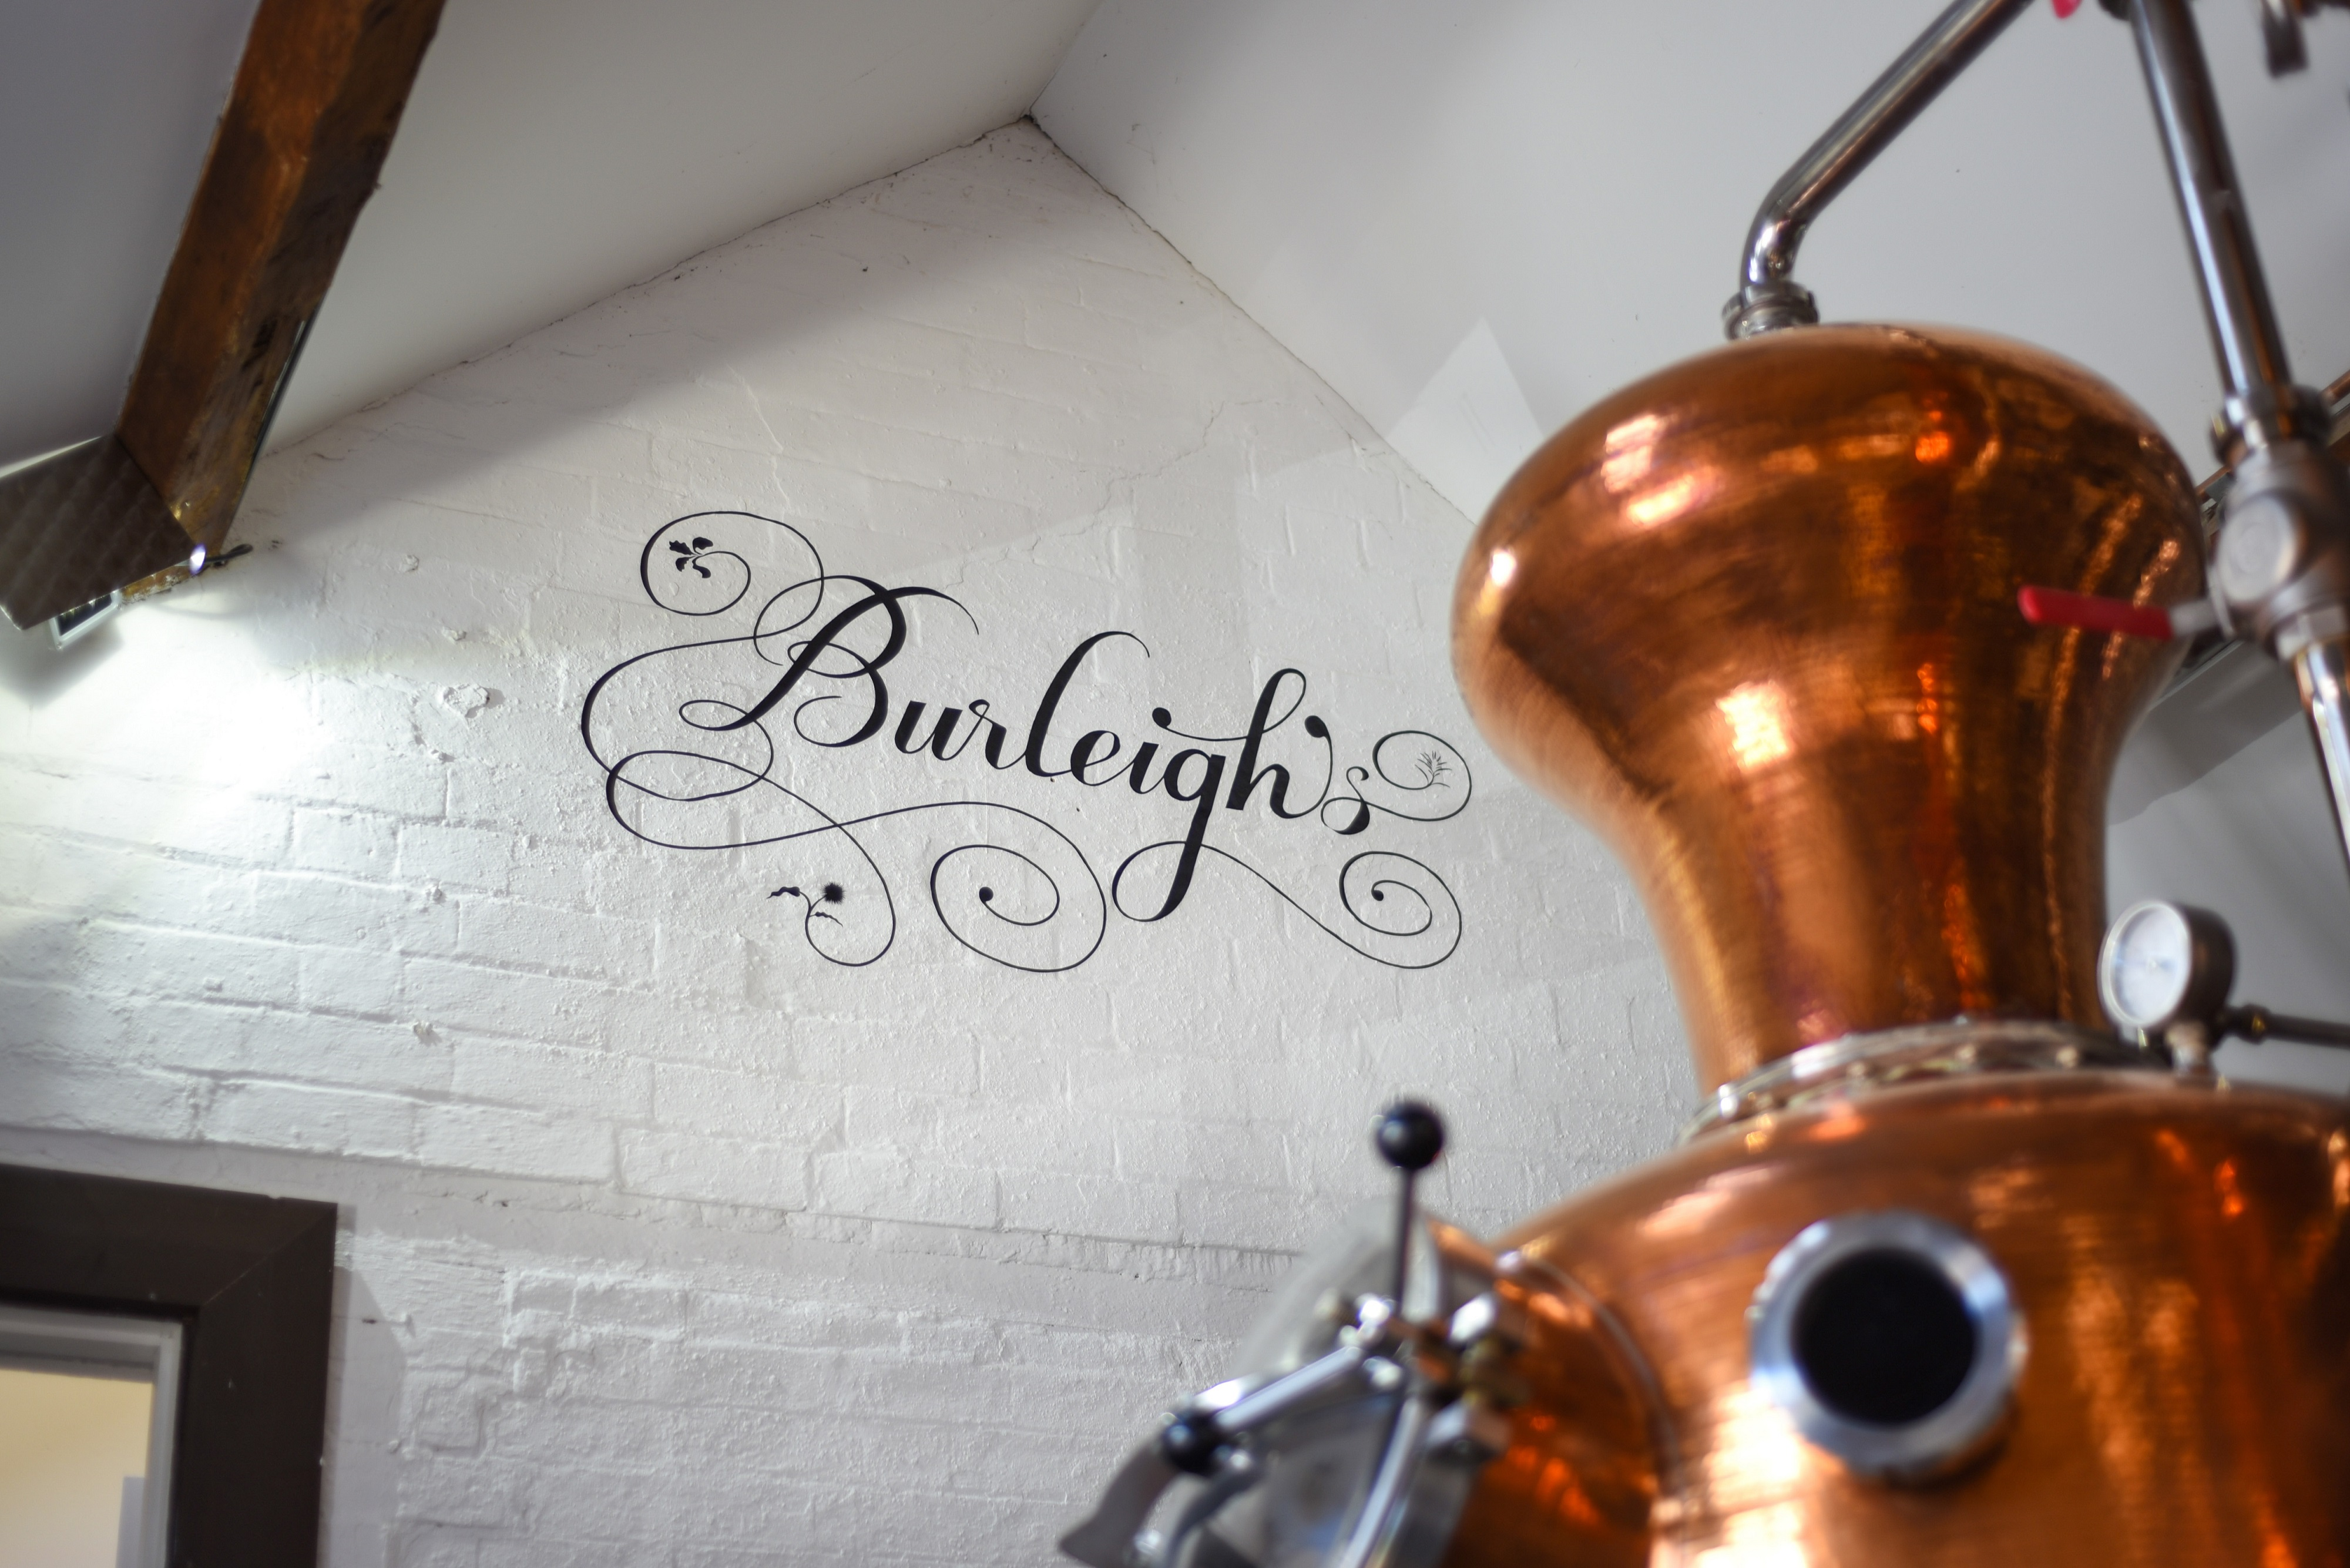 LEICESTERSHIRE GIN DISTILLER RECEIVES INTERNATIONAL RECOGNITION